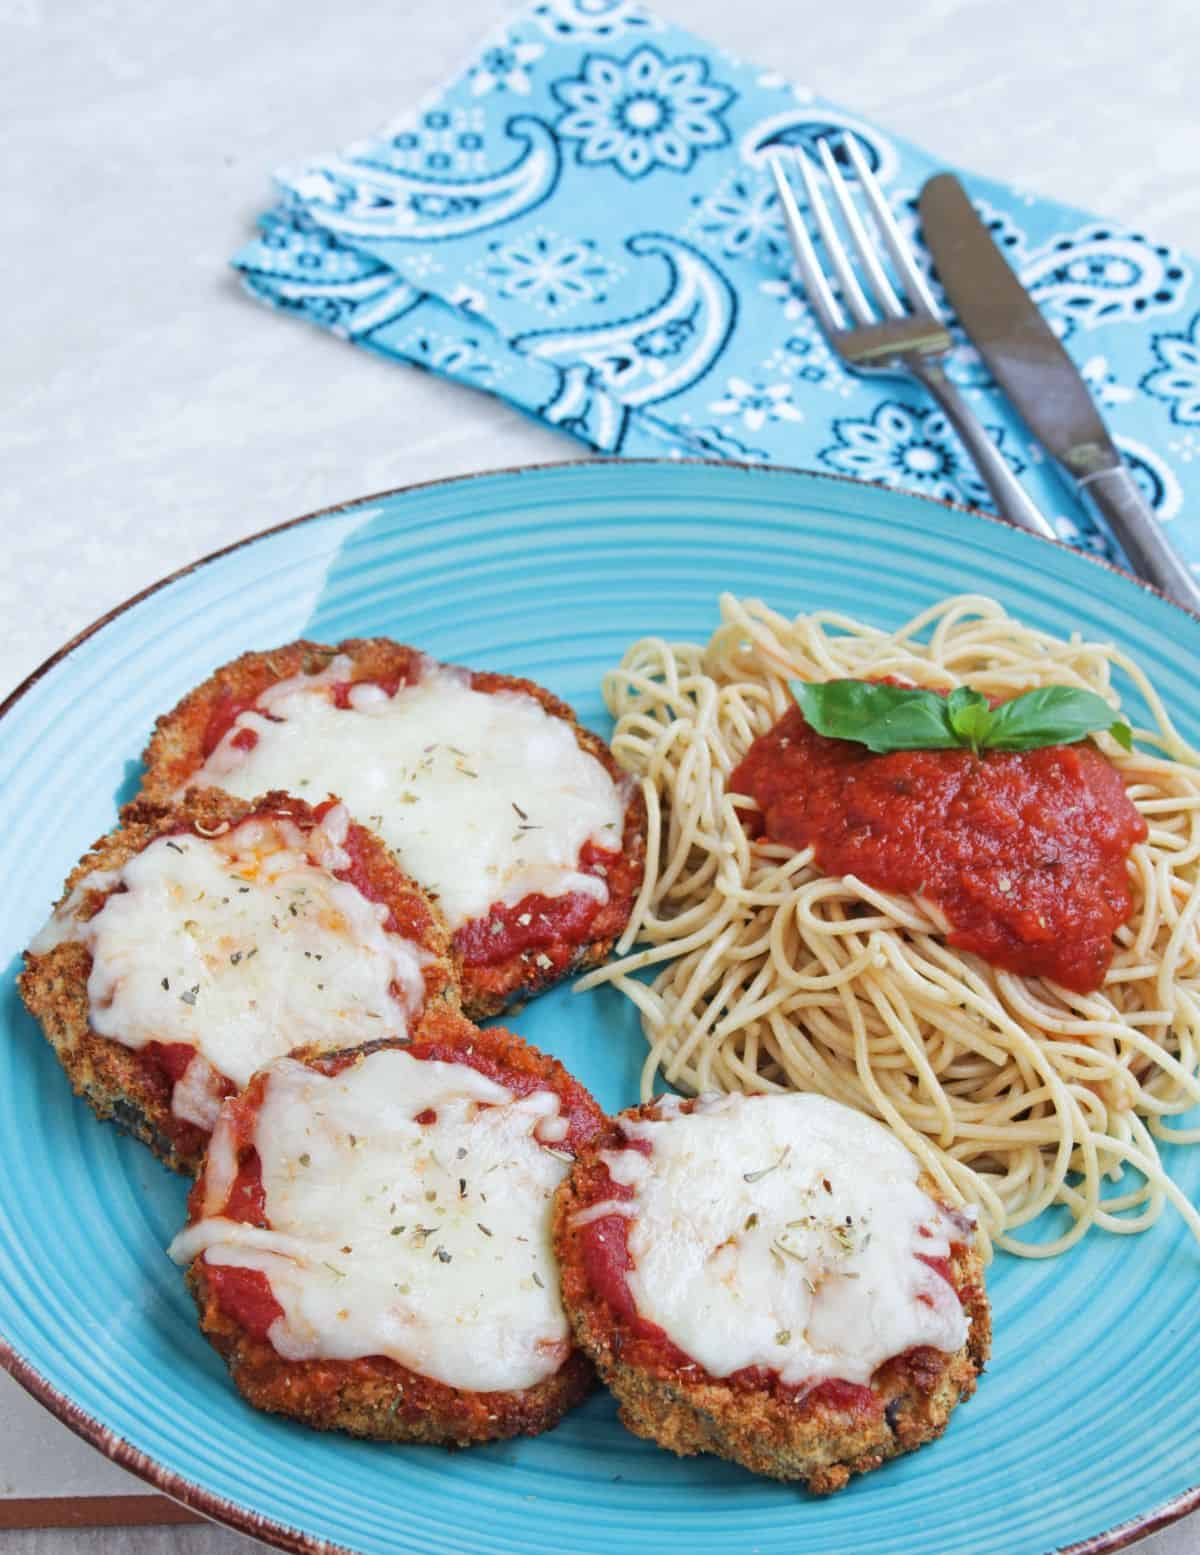 Eggplant parmesan with melted cheese and spaghetti on a plate